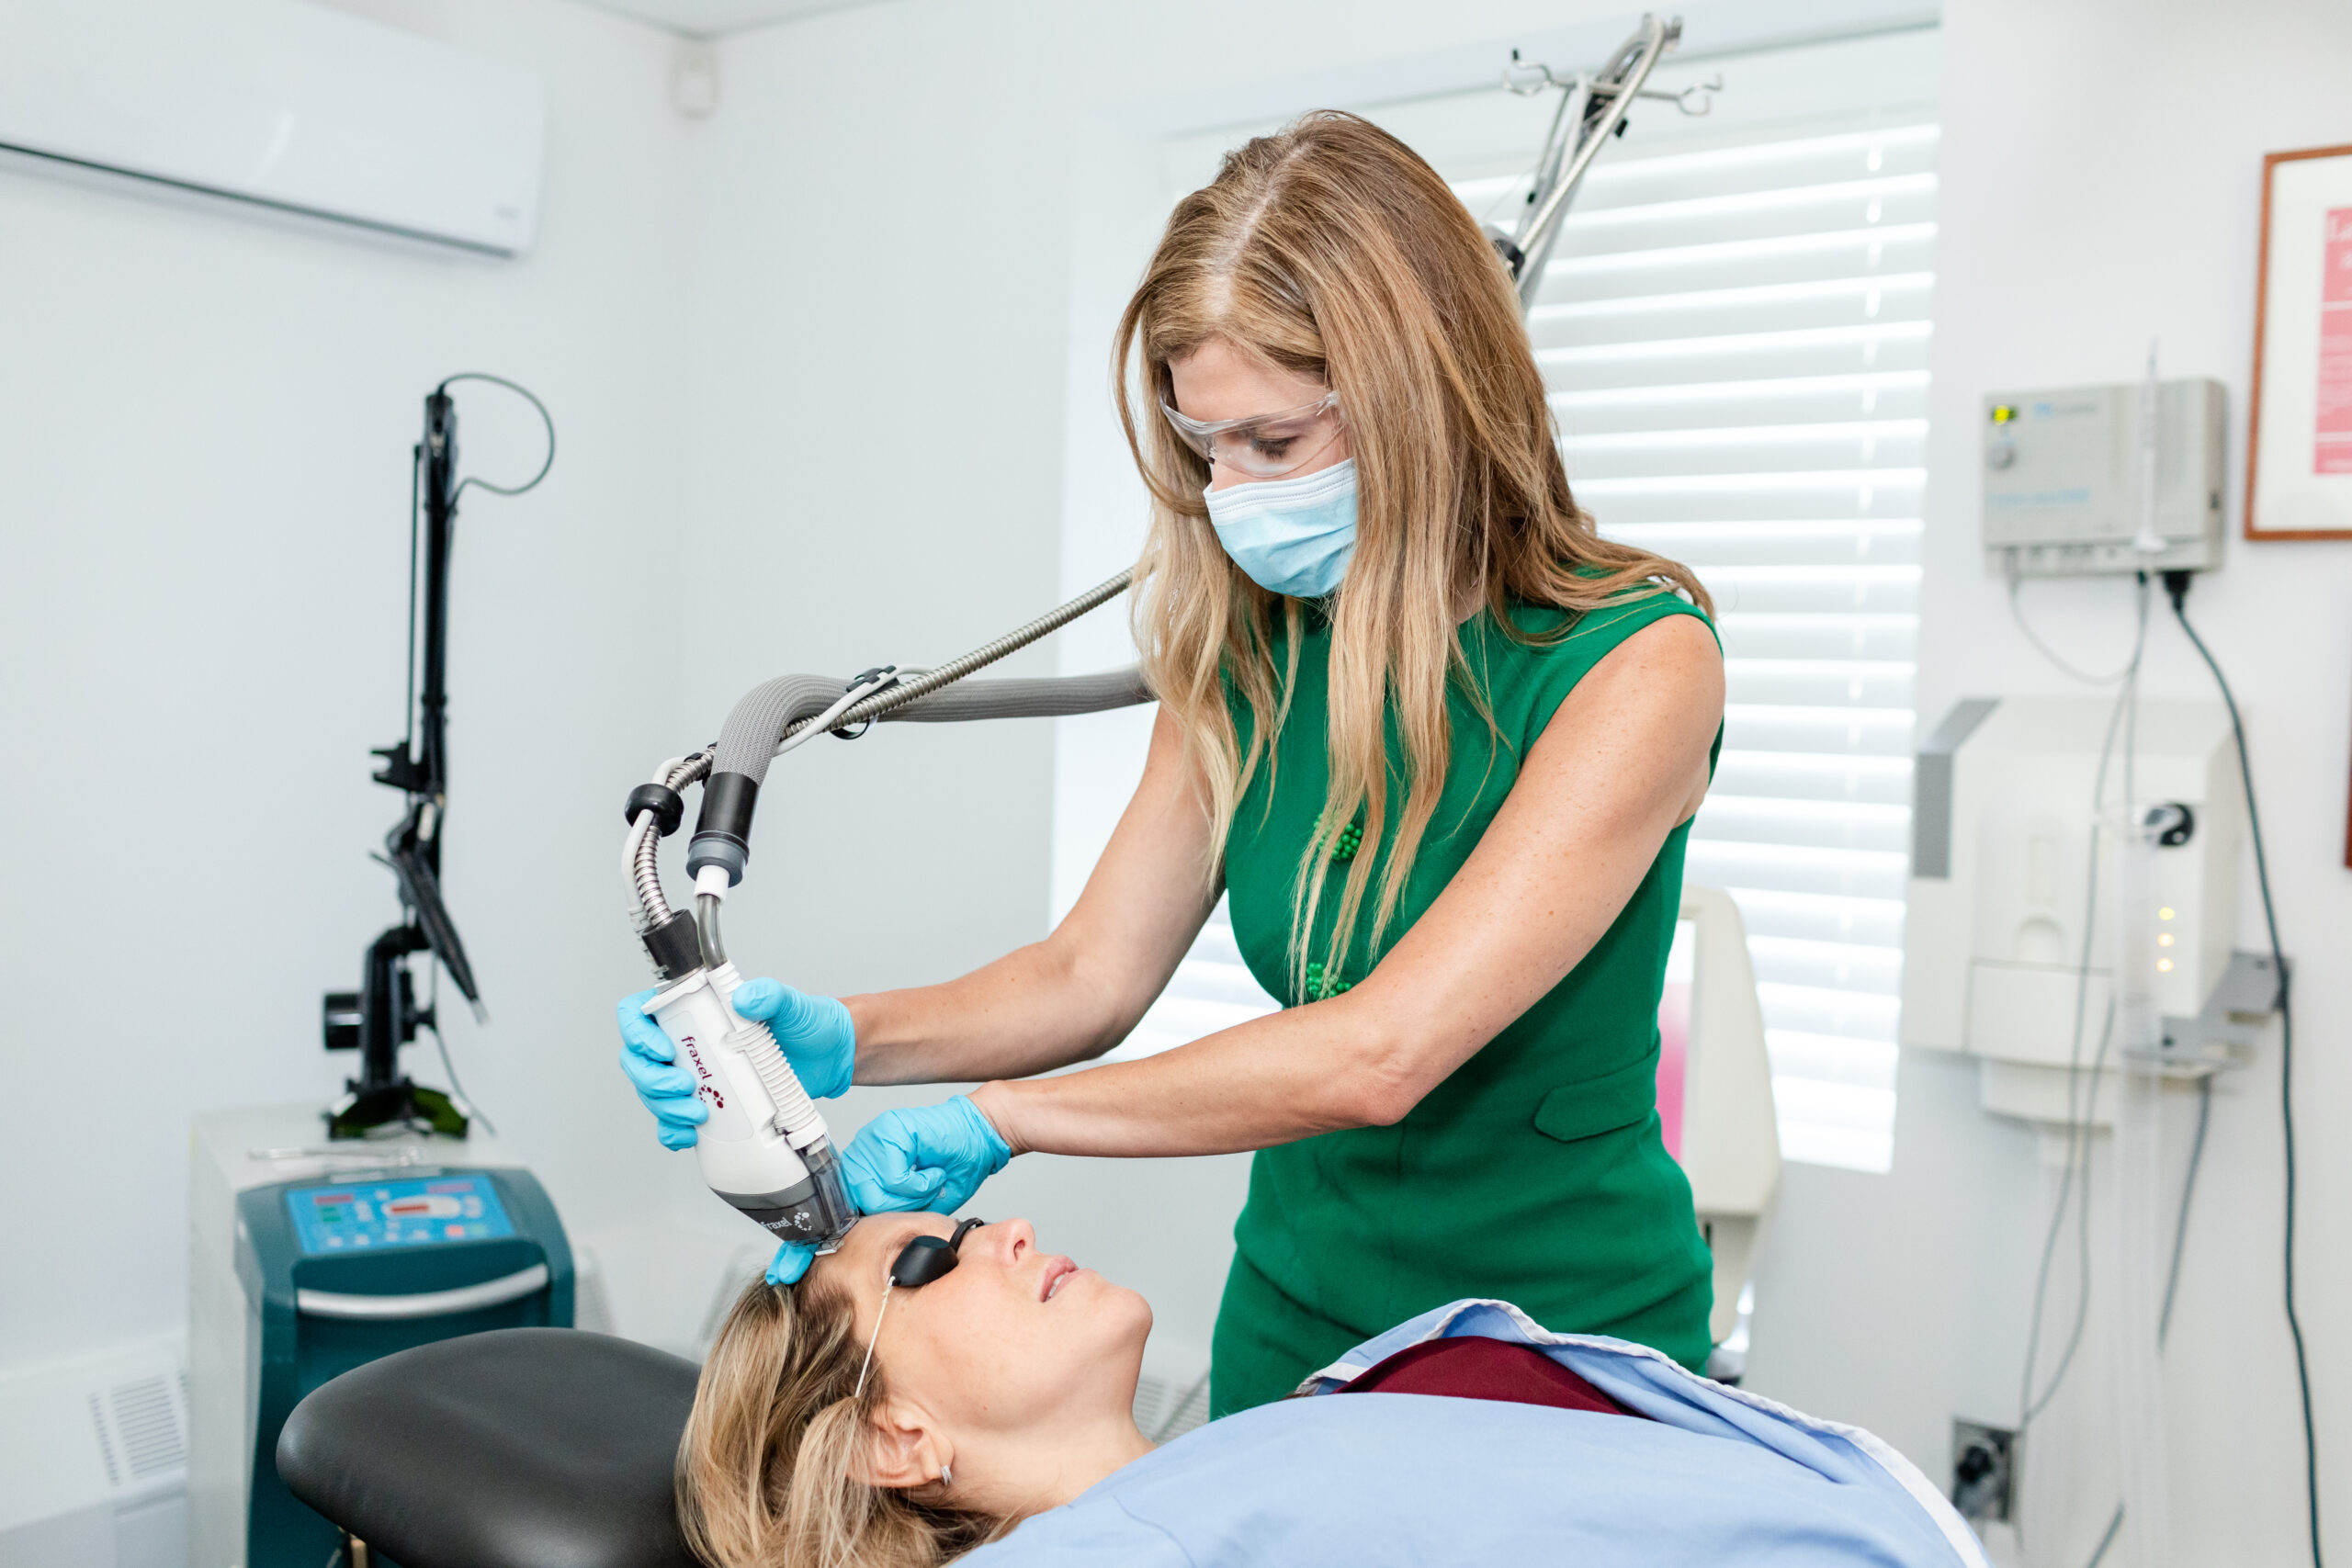 Board Certified Dermatologist, Dr. Murphy-Rose is performing laser on her patient to treat redness in the face in NYC, NY.